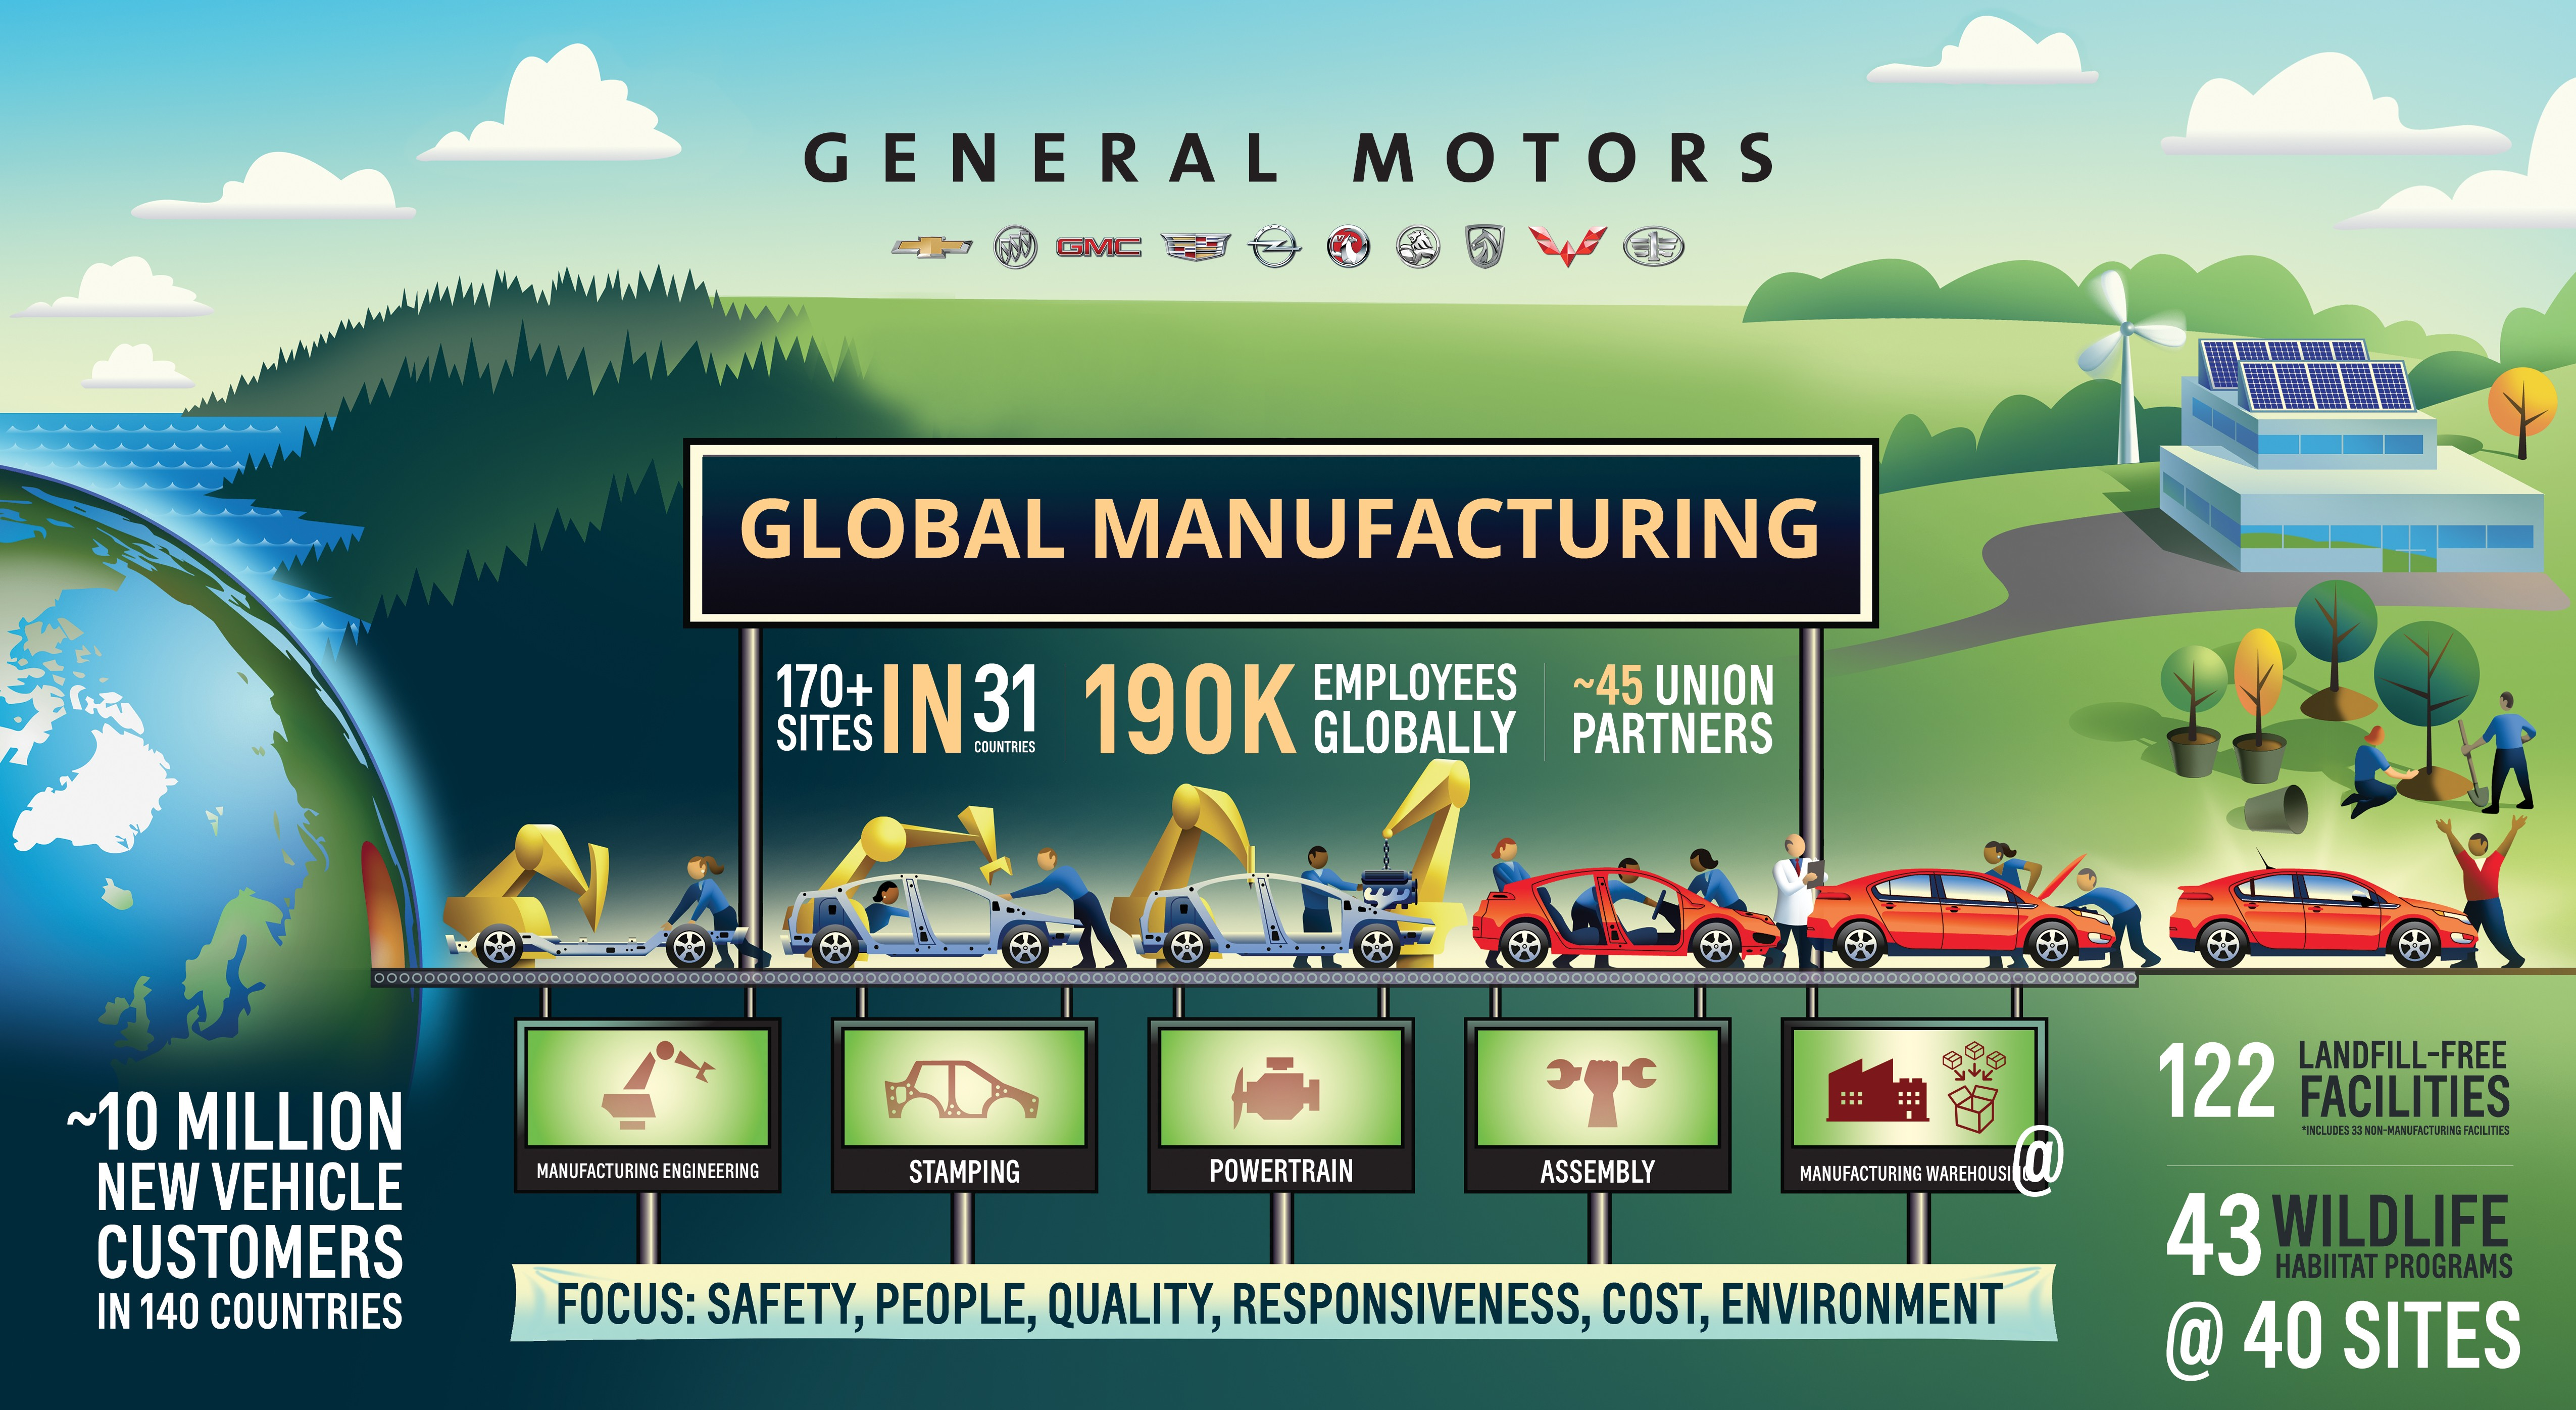 Gm Celebrates The Manufacturing Of Over 500 Million